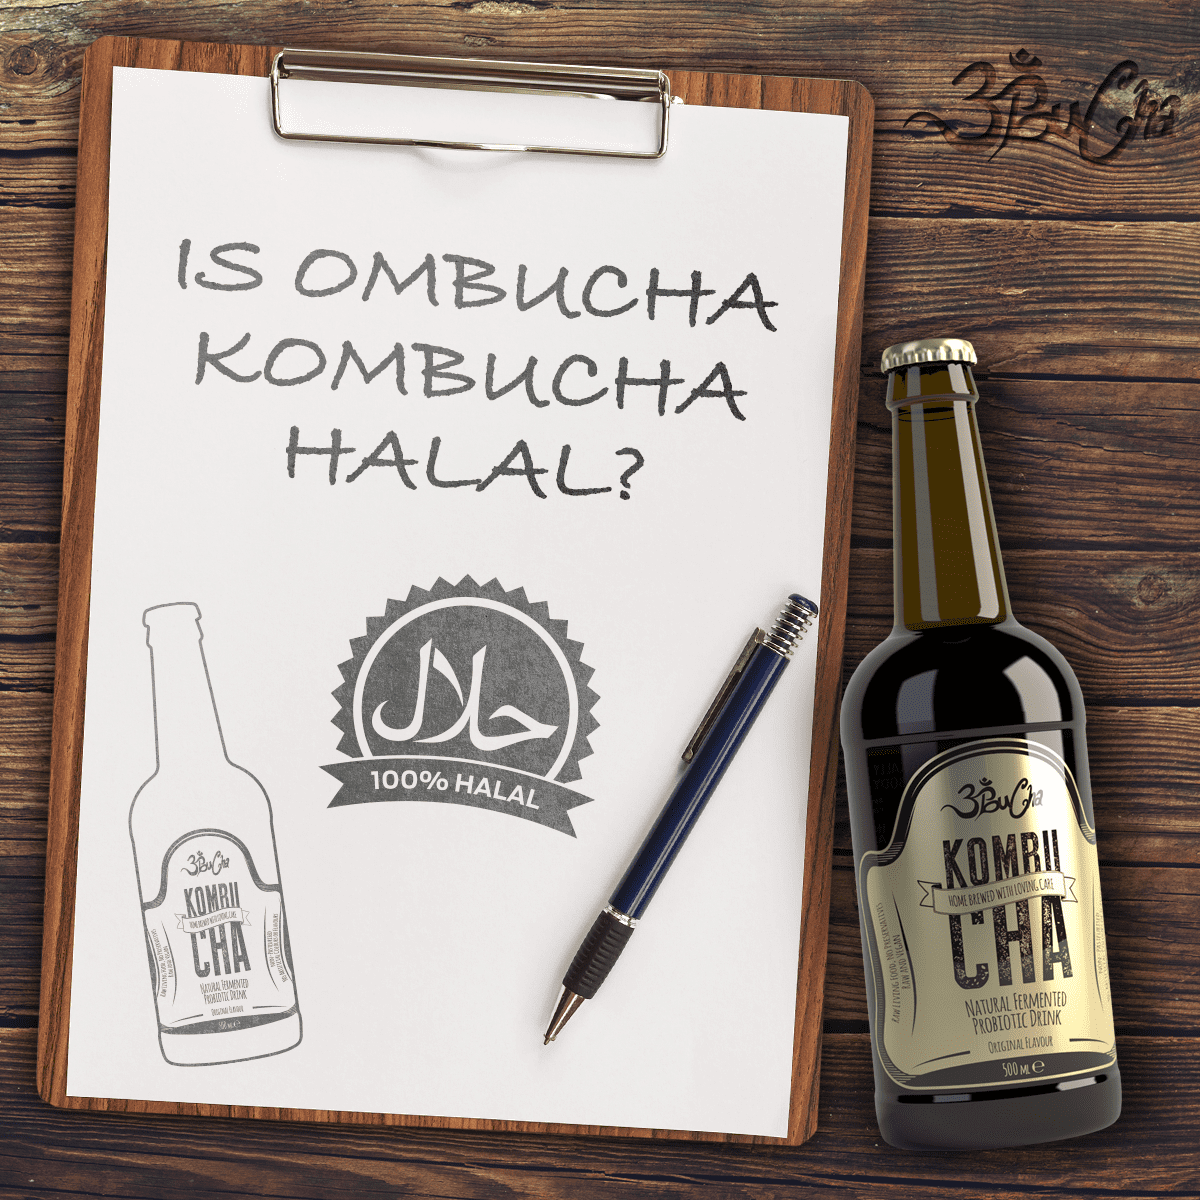 is ombucha kombucha halal